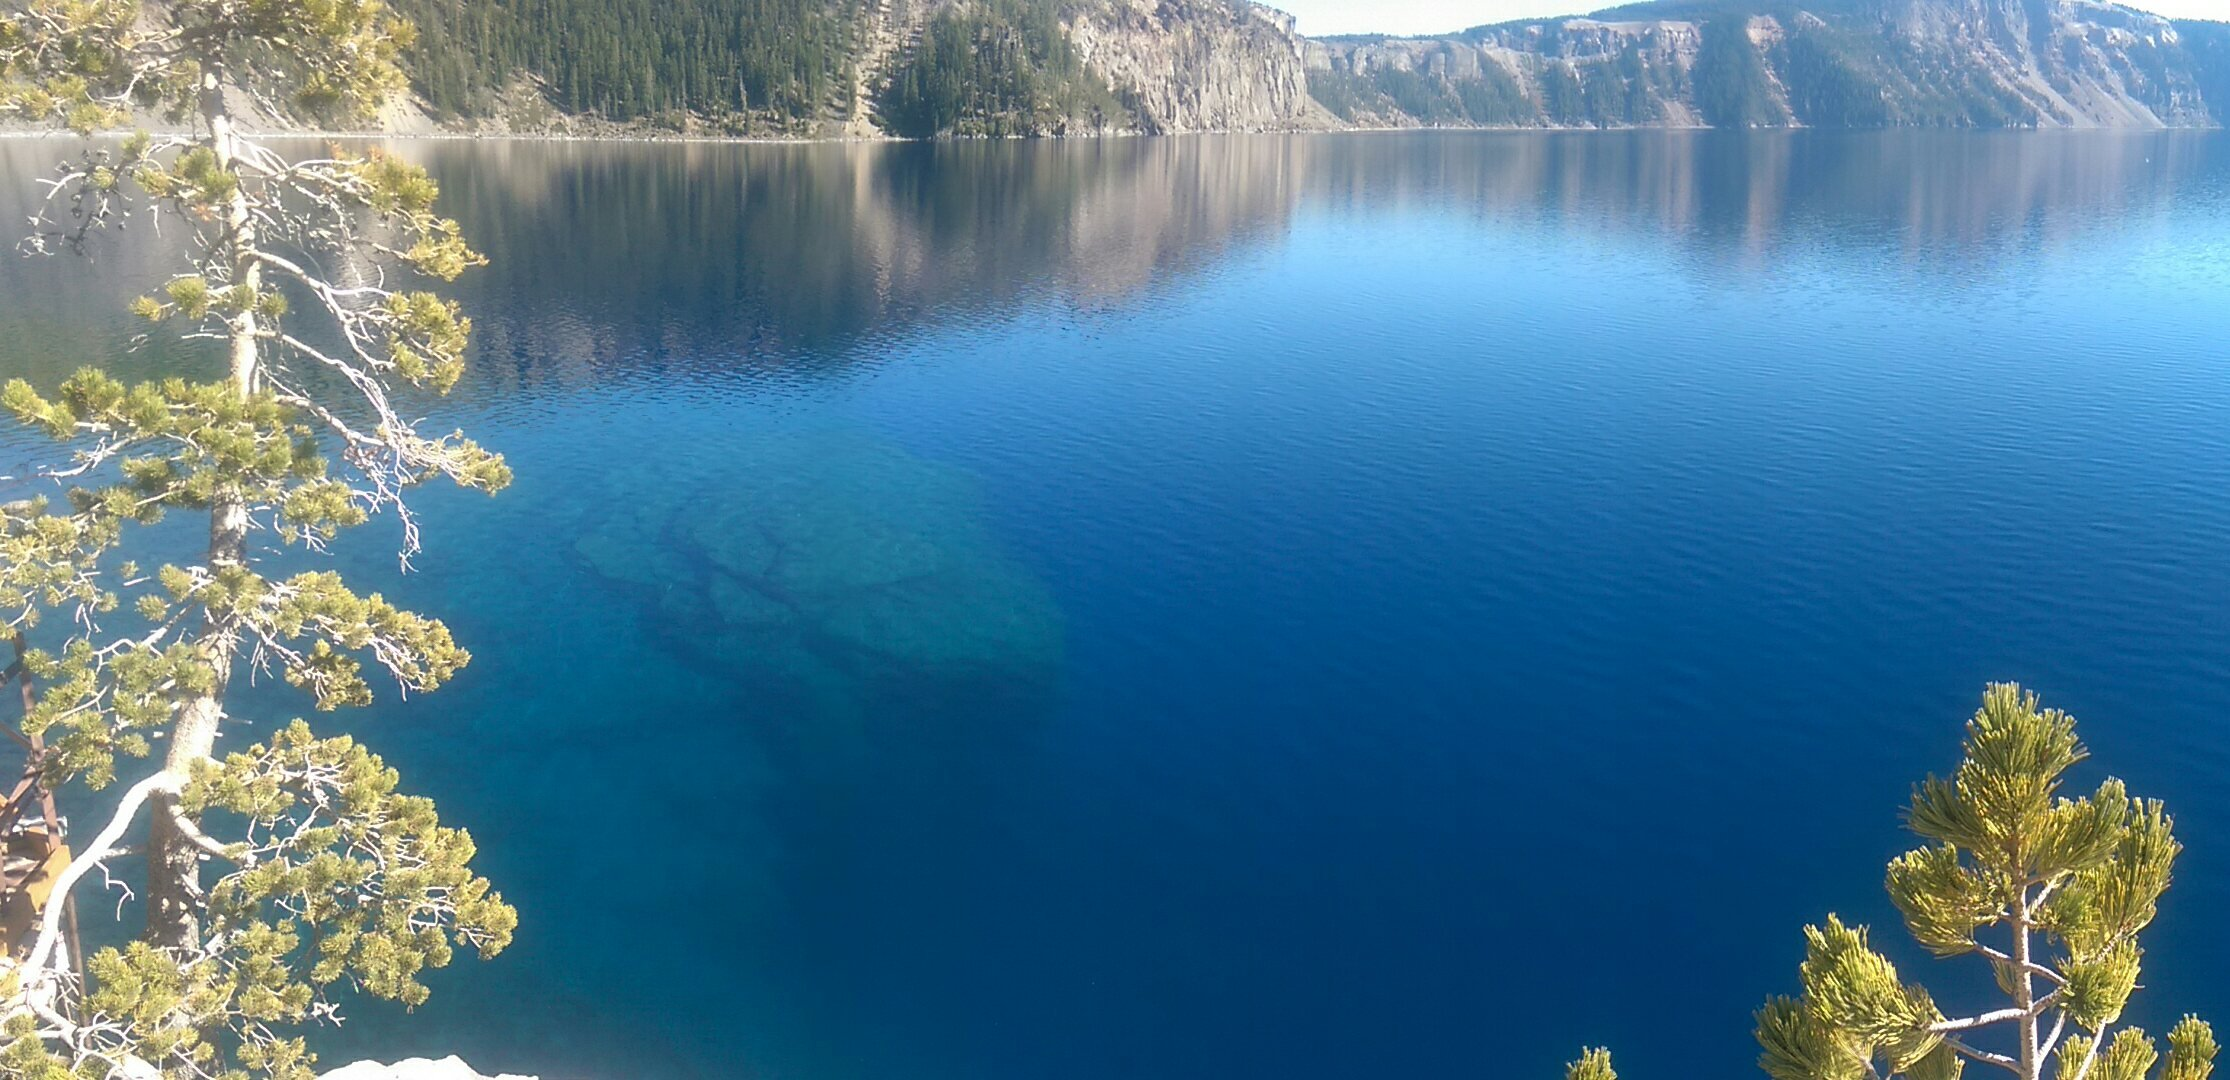 Download A Different View Of Crater Lakewhere The Shoreline Drops Off To A Depth Of 1943 Feet